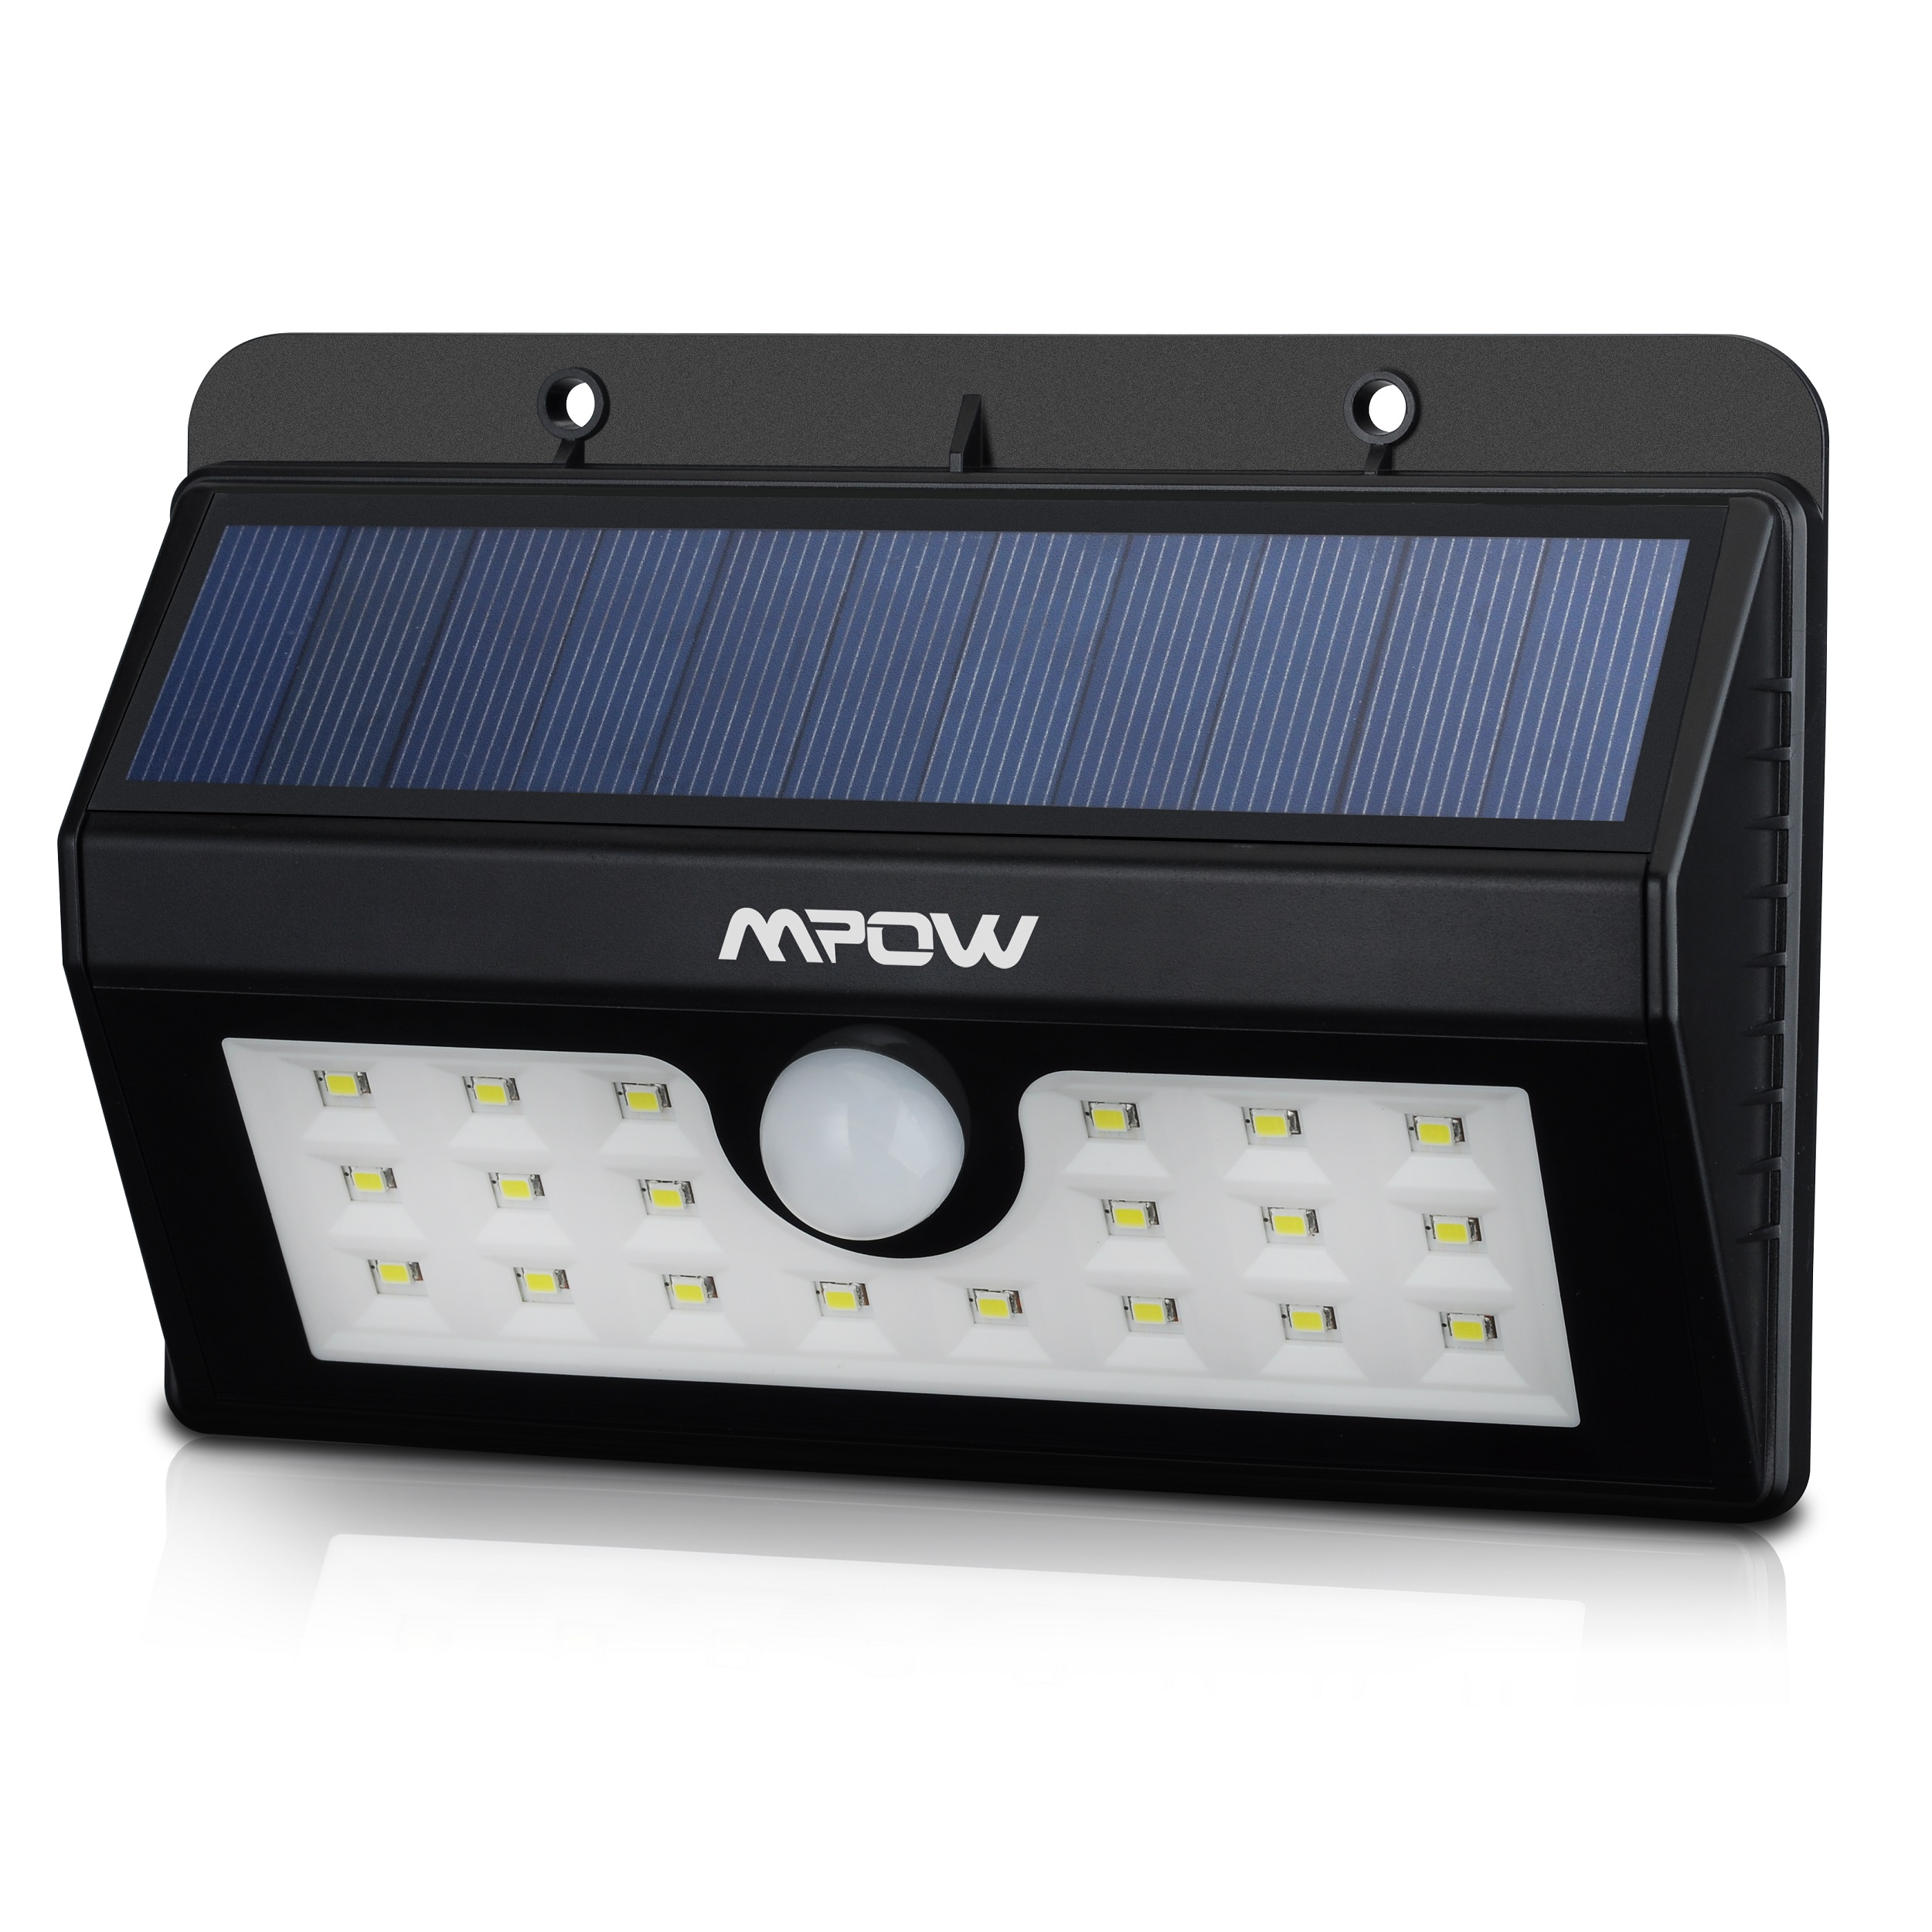 Mpow Super Bright 20 LED Solar Powered Wireless Weatherproof Outdoor Light Motion with 3 Intelligent Modes - Walmart.com  sc 1 st  Walmart & Mpow Super Bright 20 LED Solar Powered Wireless Weatherproof Outdoor ...